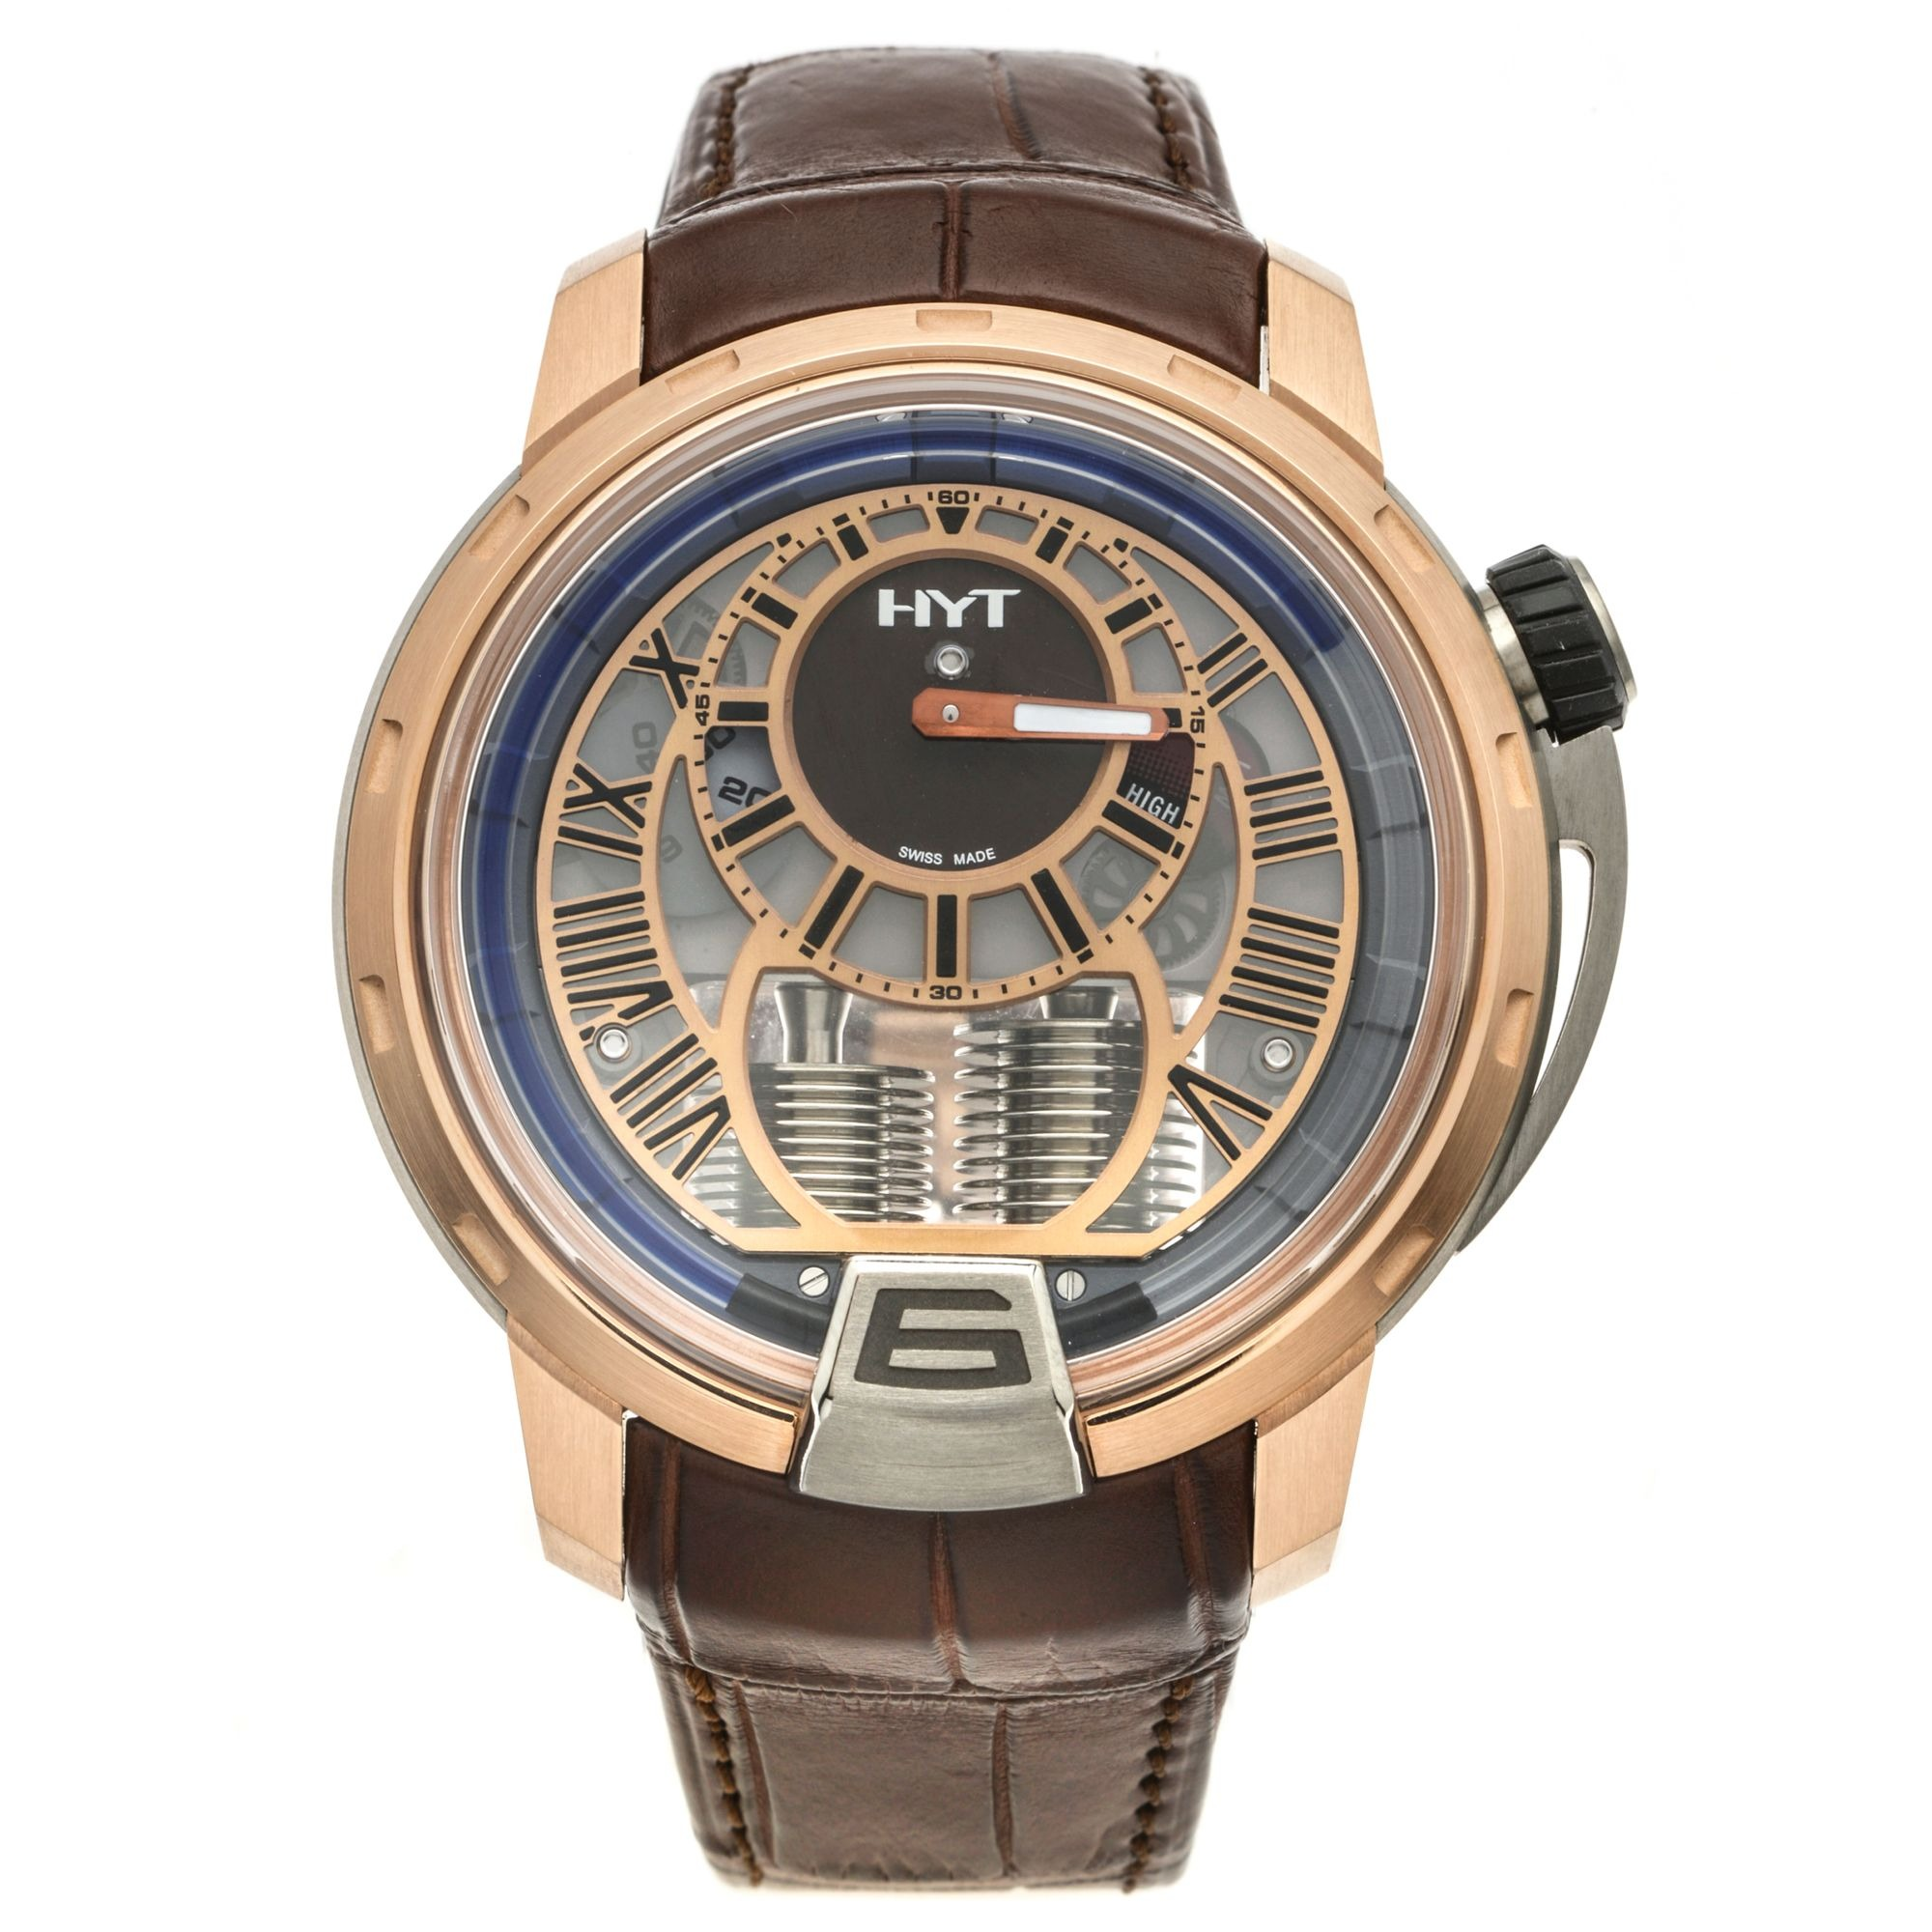 HYT-H1-Air-Classic-18K-Rose-Gold-And-Titanium-Manual-Wind-Mens-Watch